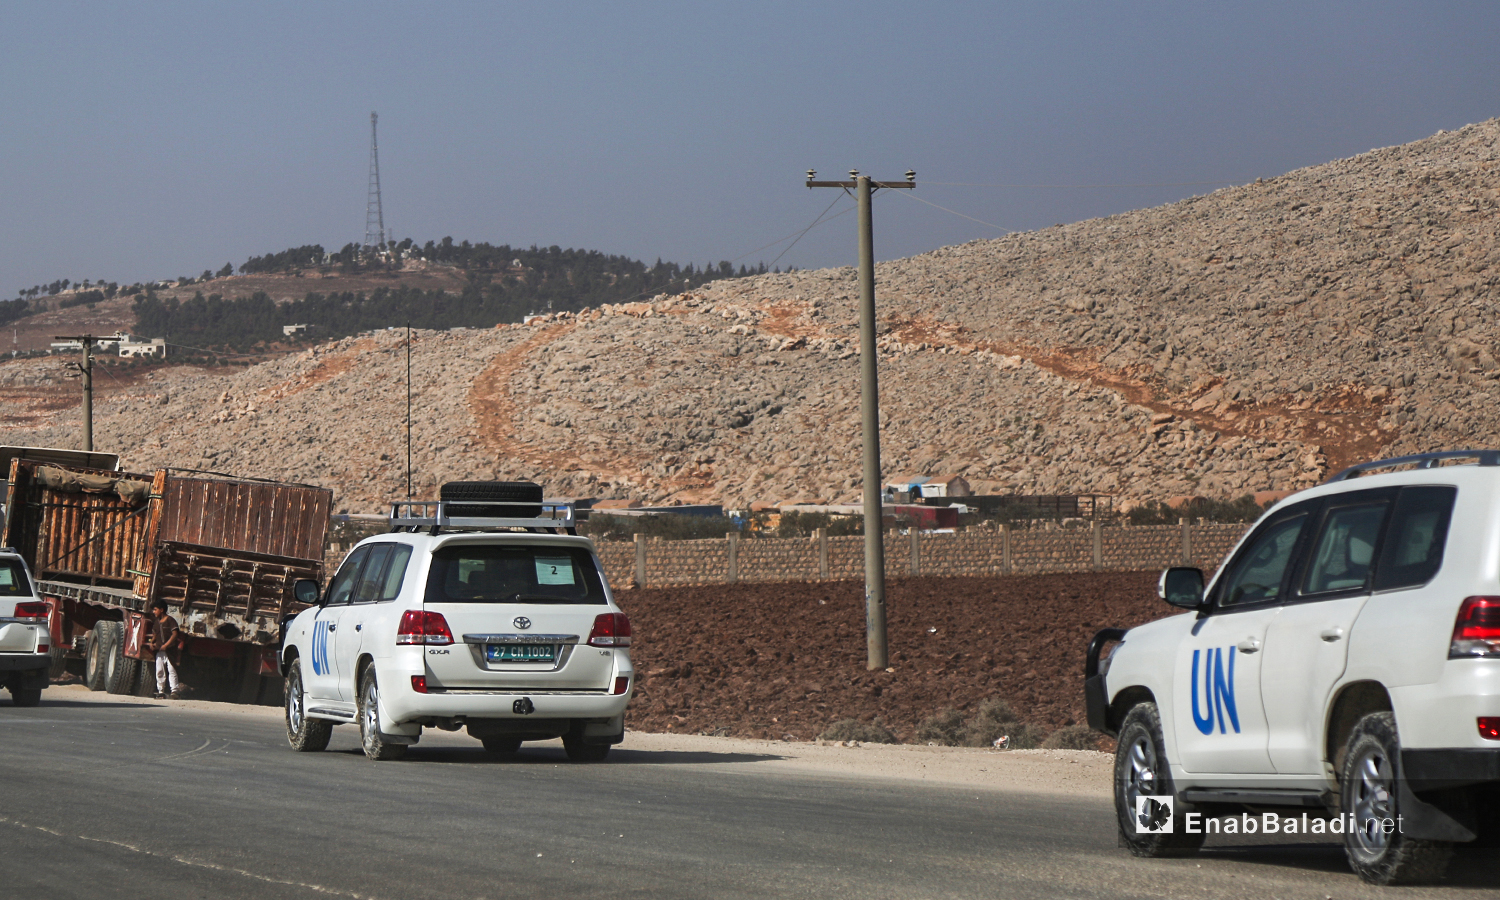 """The United Nations delegation leaving through the """"Bab al-Hawa"""" border crossing after ending its visit to some camps in northwestern Syria - 27 October 2020 (Enab Baladi)"""